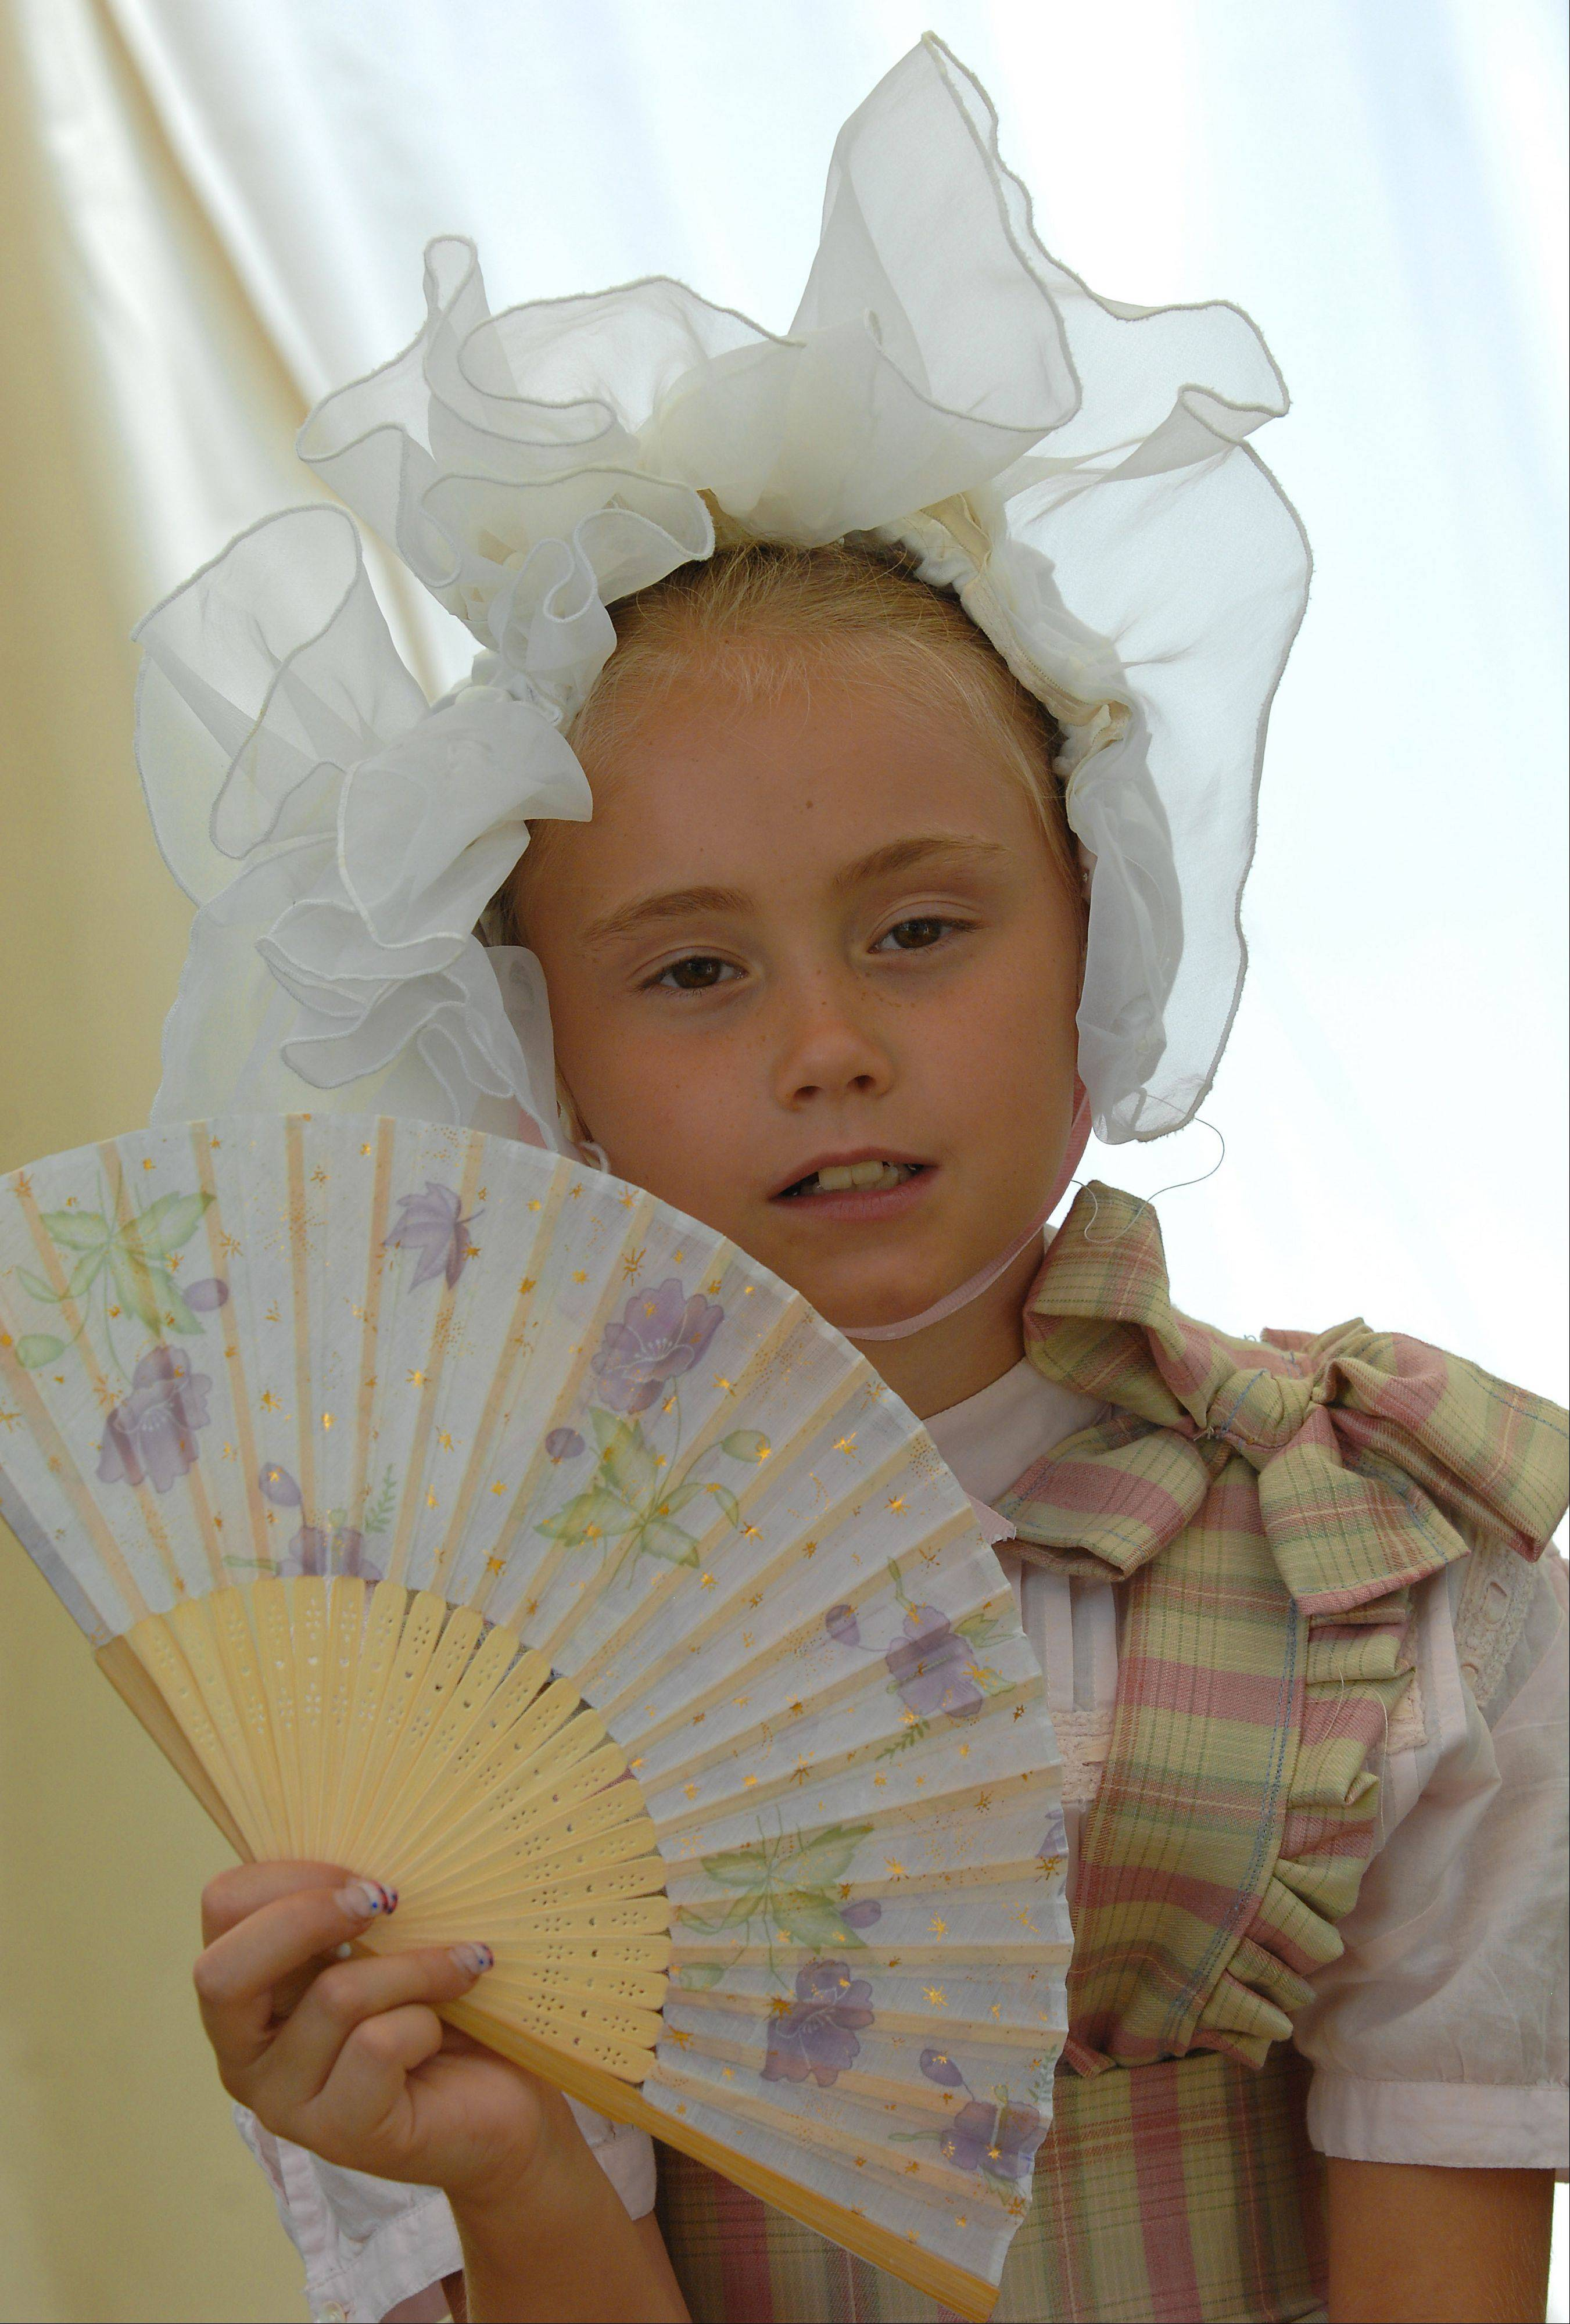 Lacey Schroeder,7, of Wisconsin uses her fan on a hot summer day to keep cool.